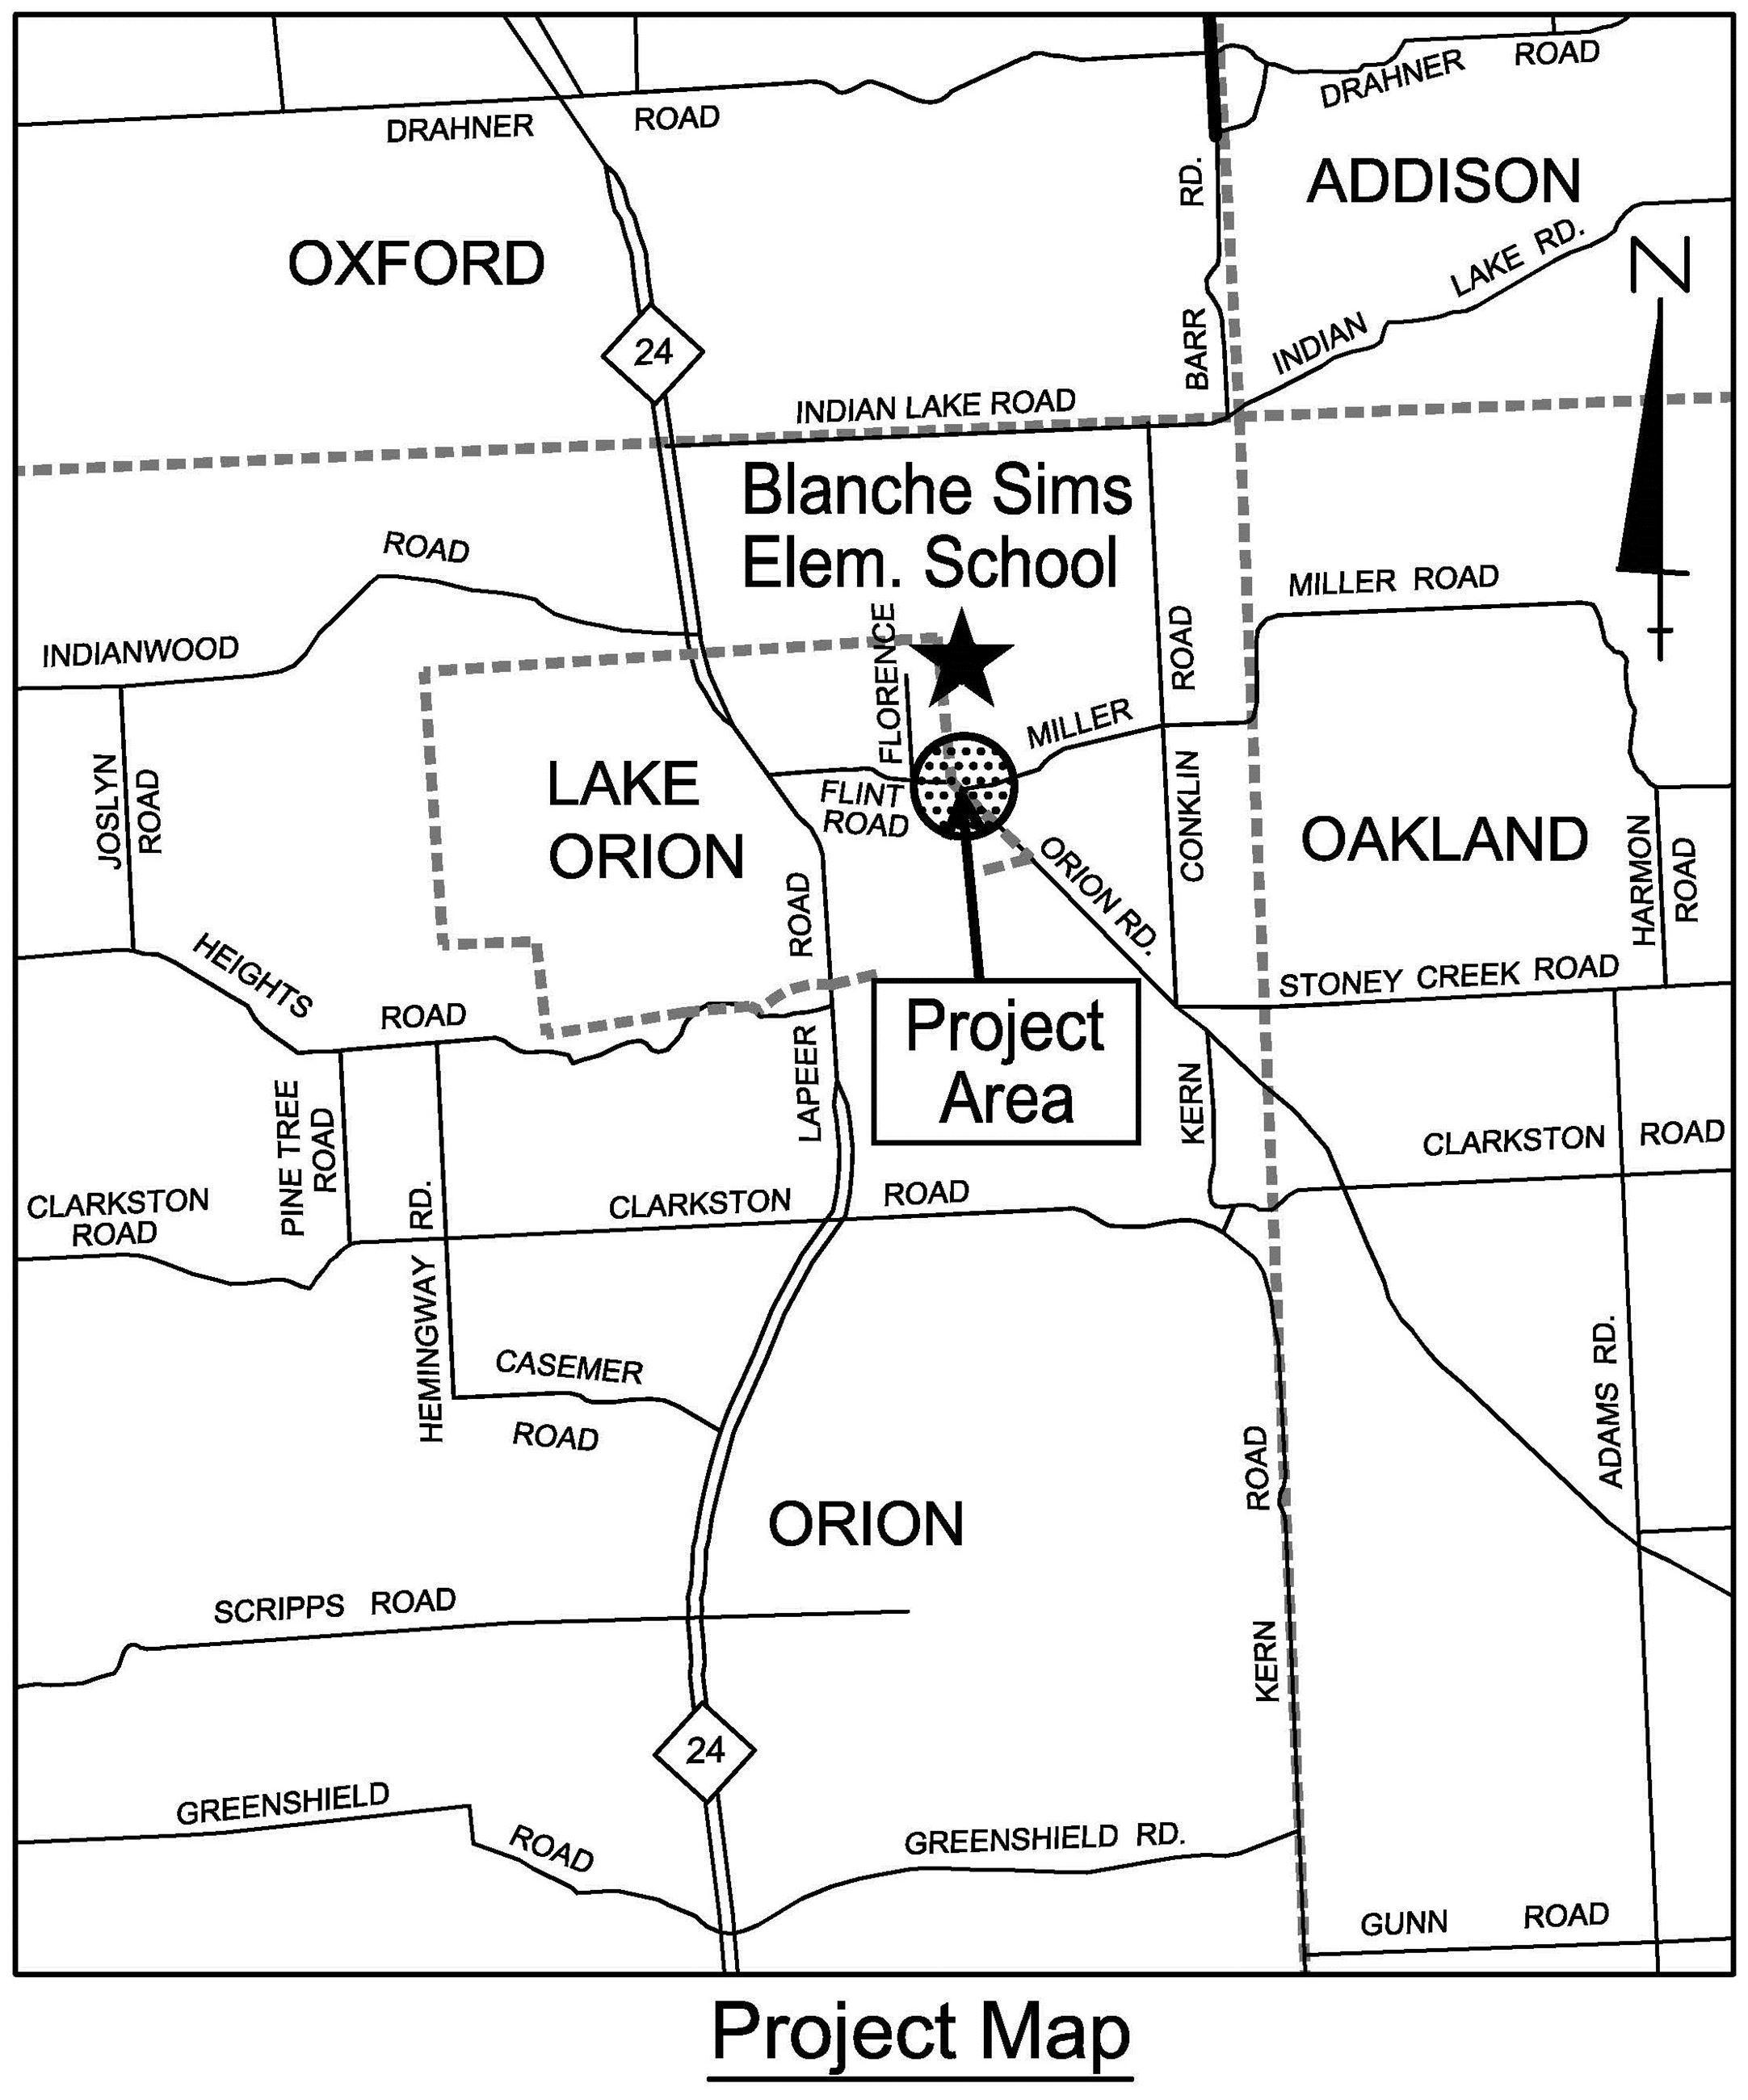 Flint, Orion and Miller Road roundabout project location map